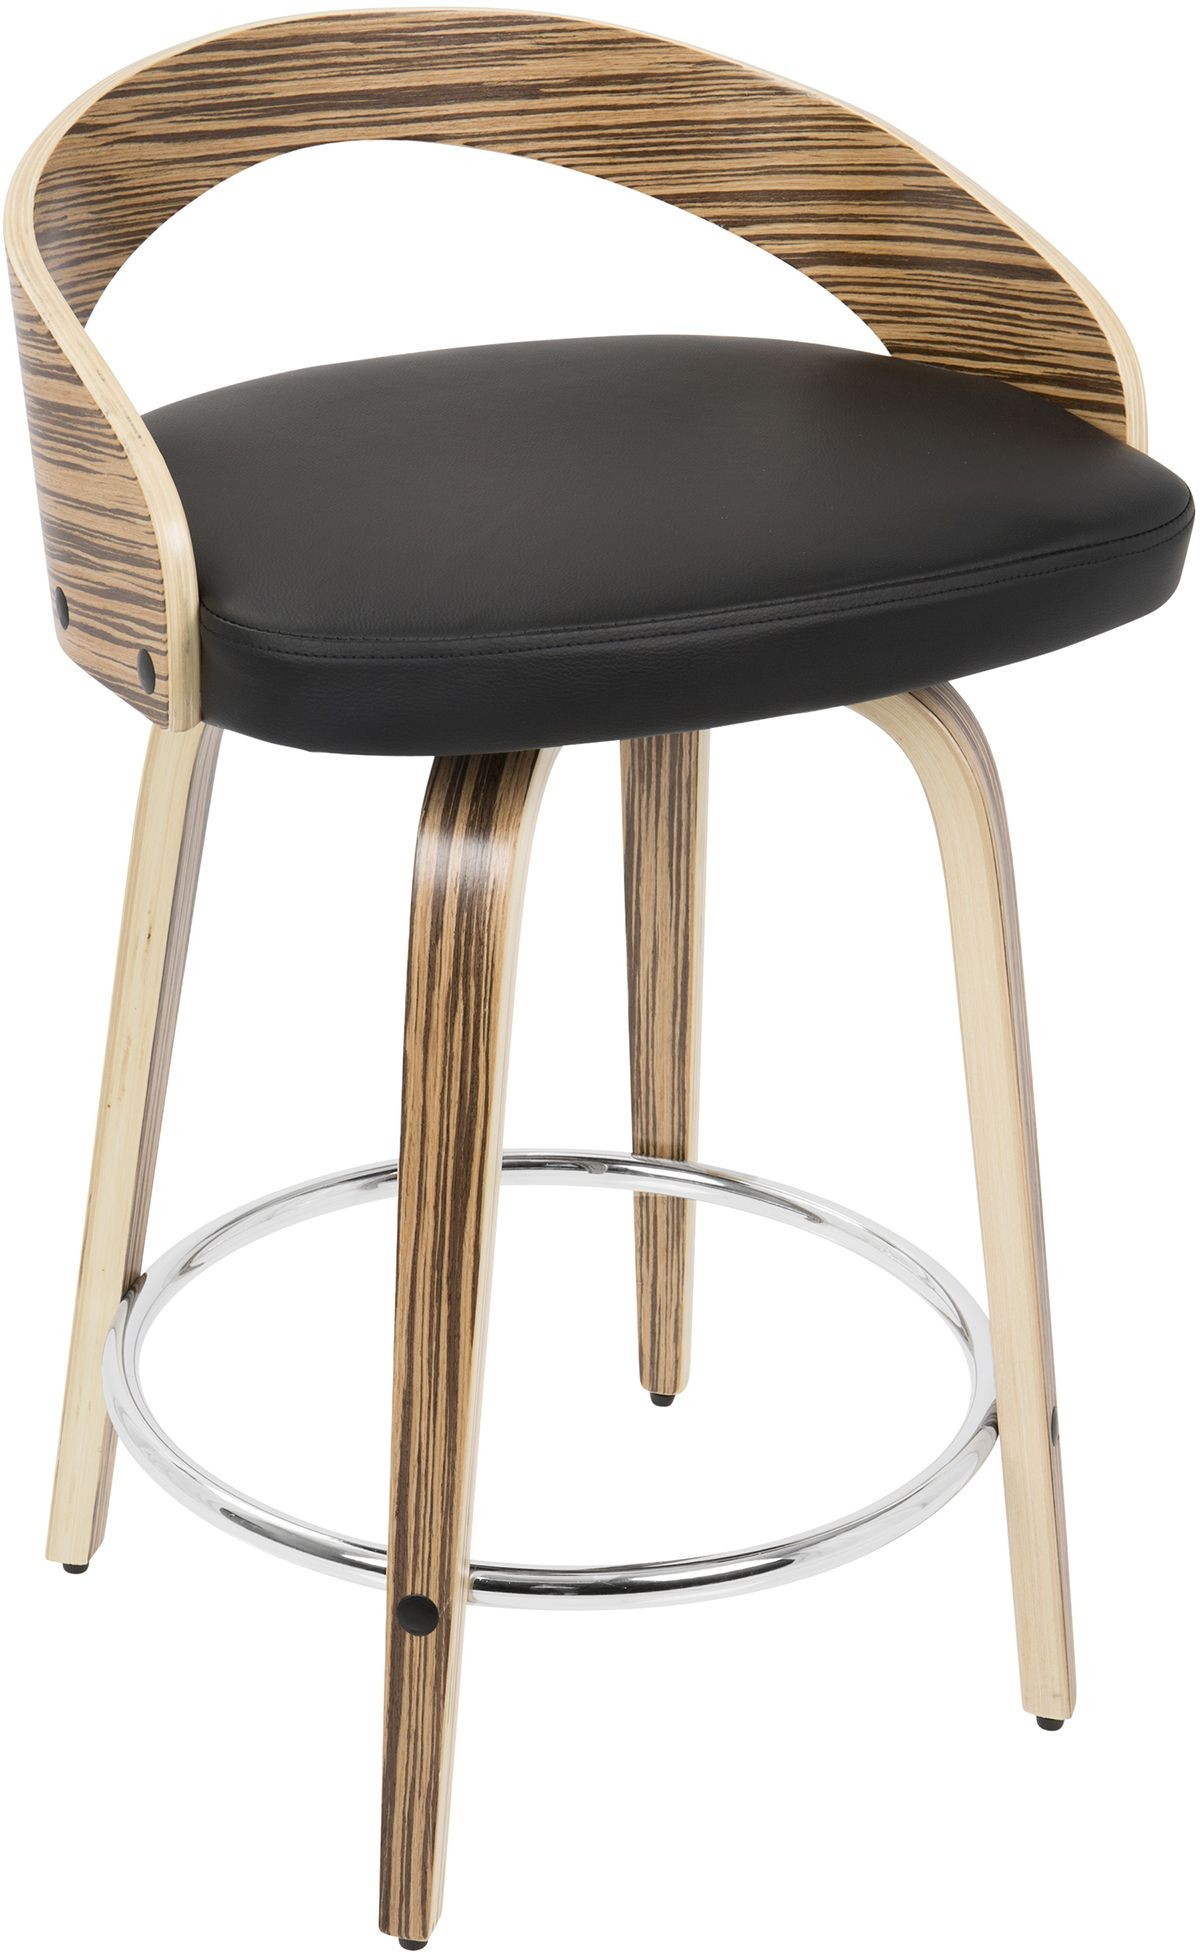 Grotto Zebra Wood And Black Counter Stool Set Of 2 From